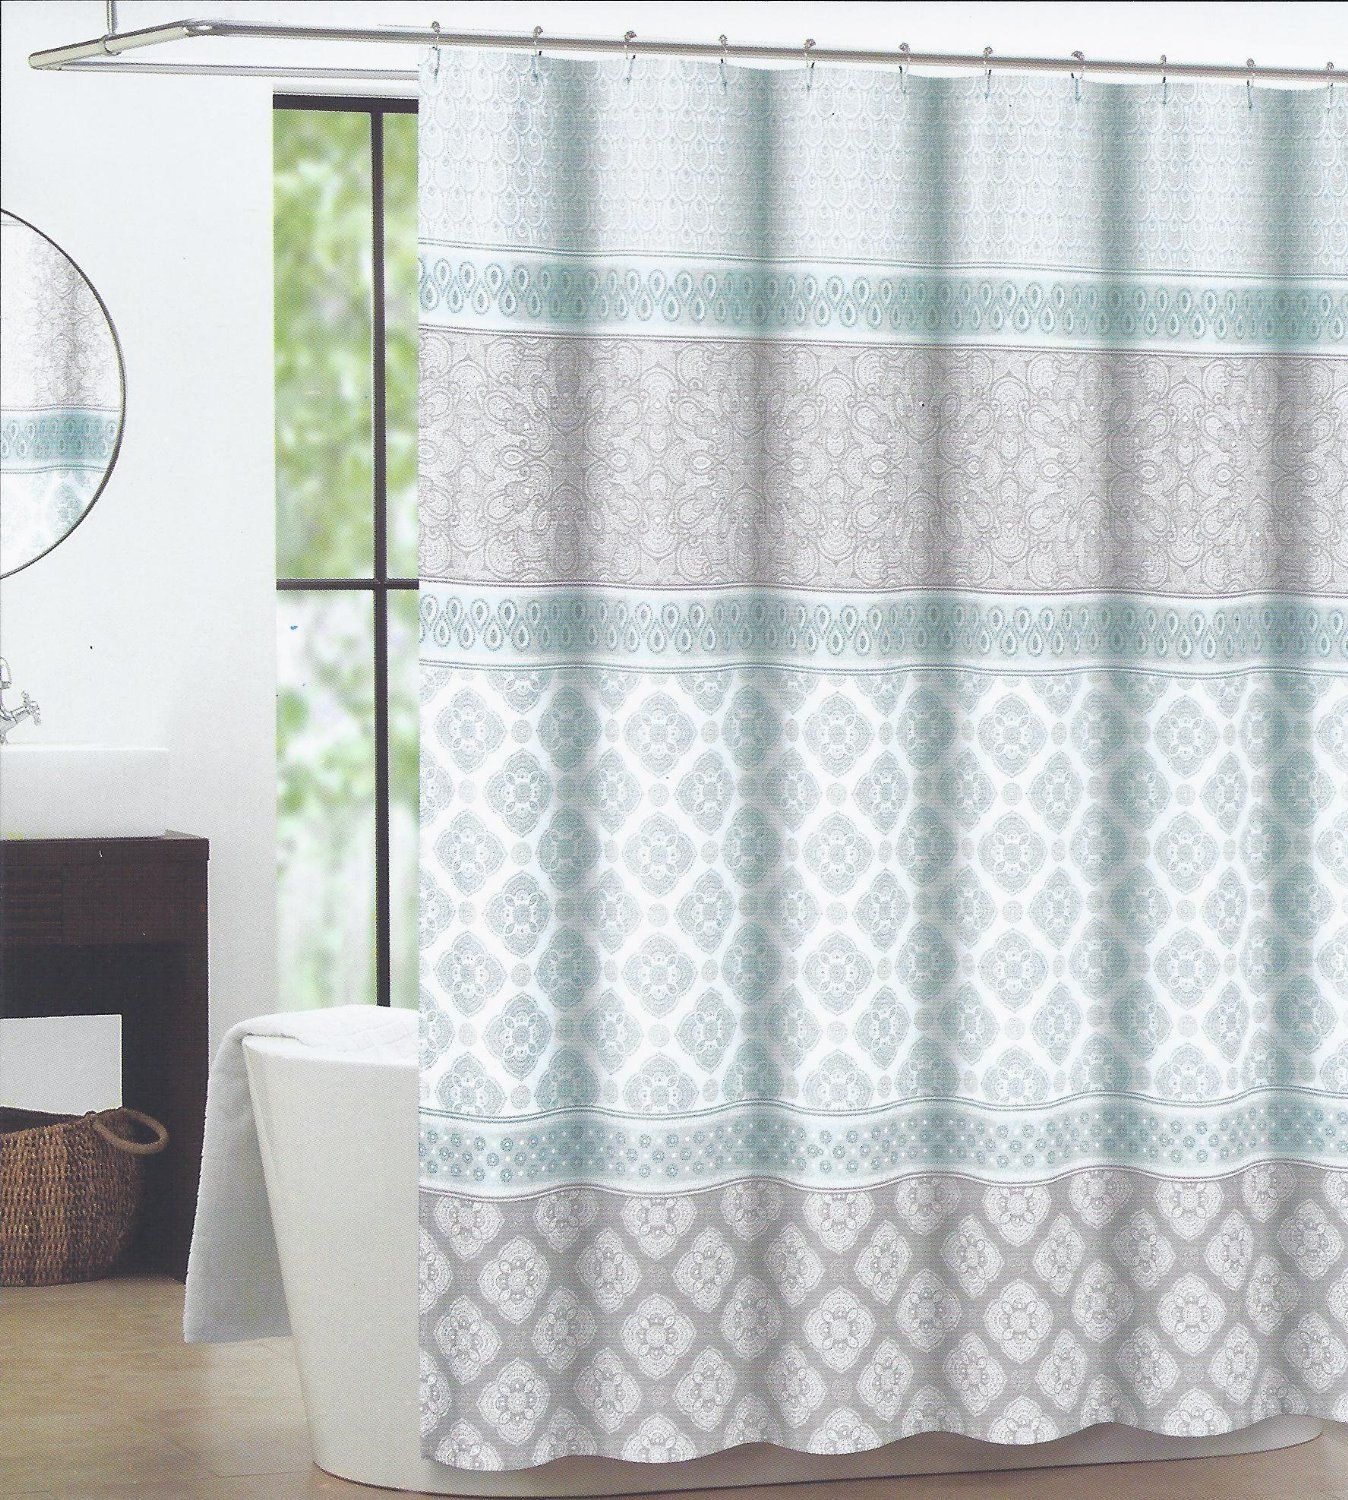 Max Studio Home Fabric Shower Curtain Seafoam Green Gray Tan